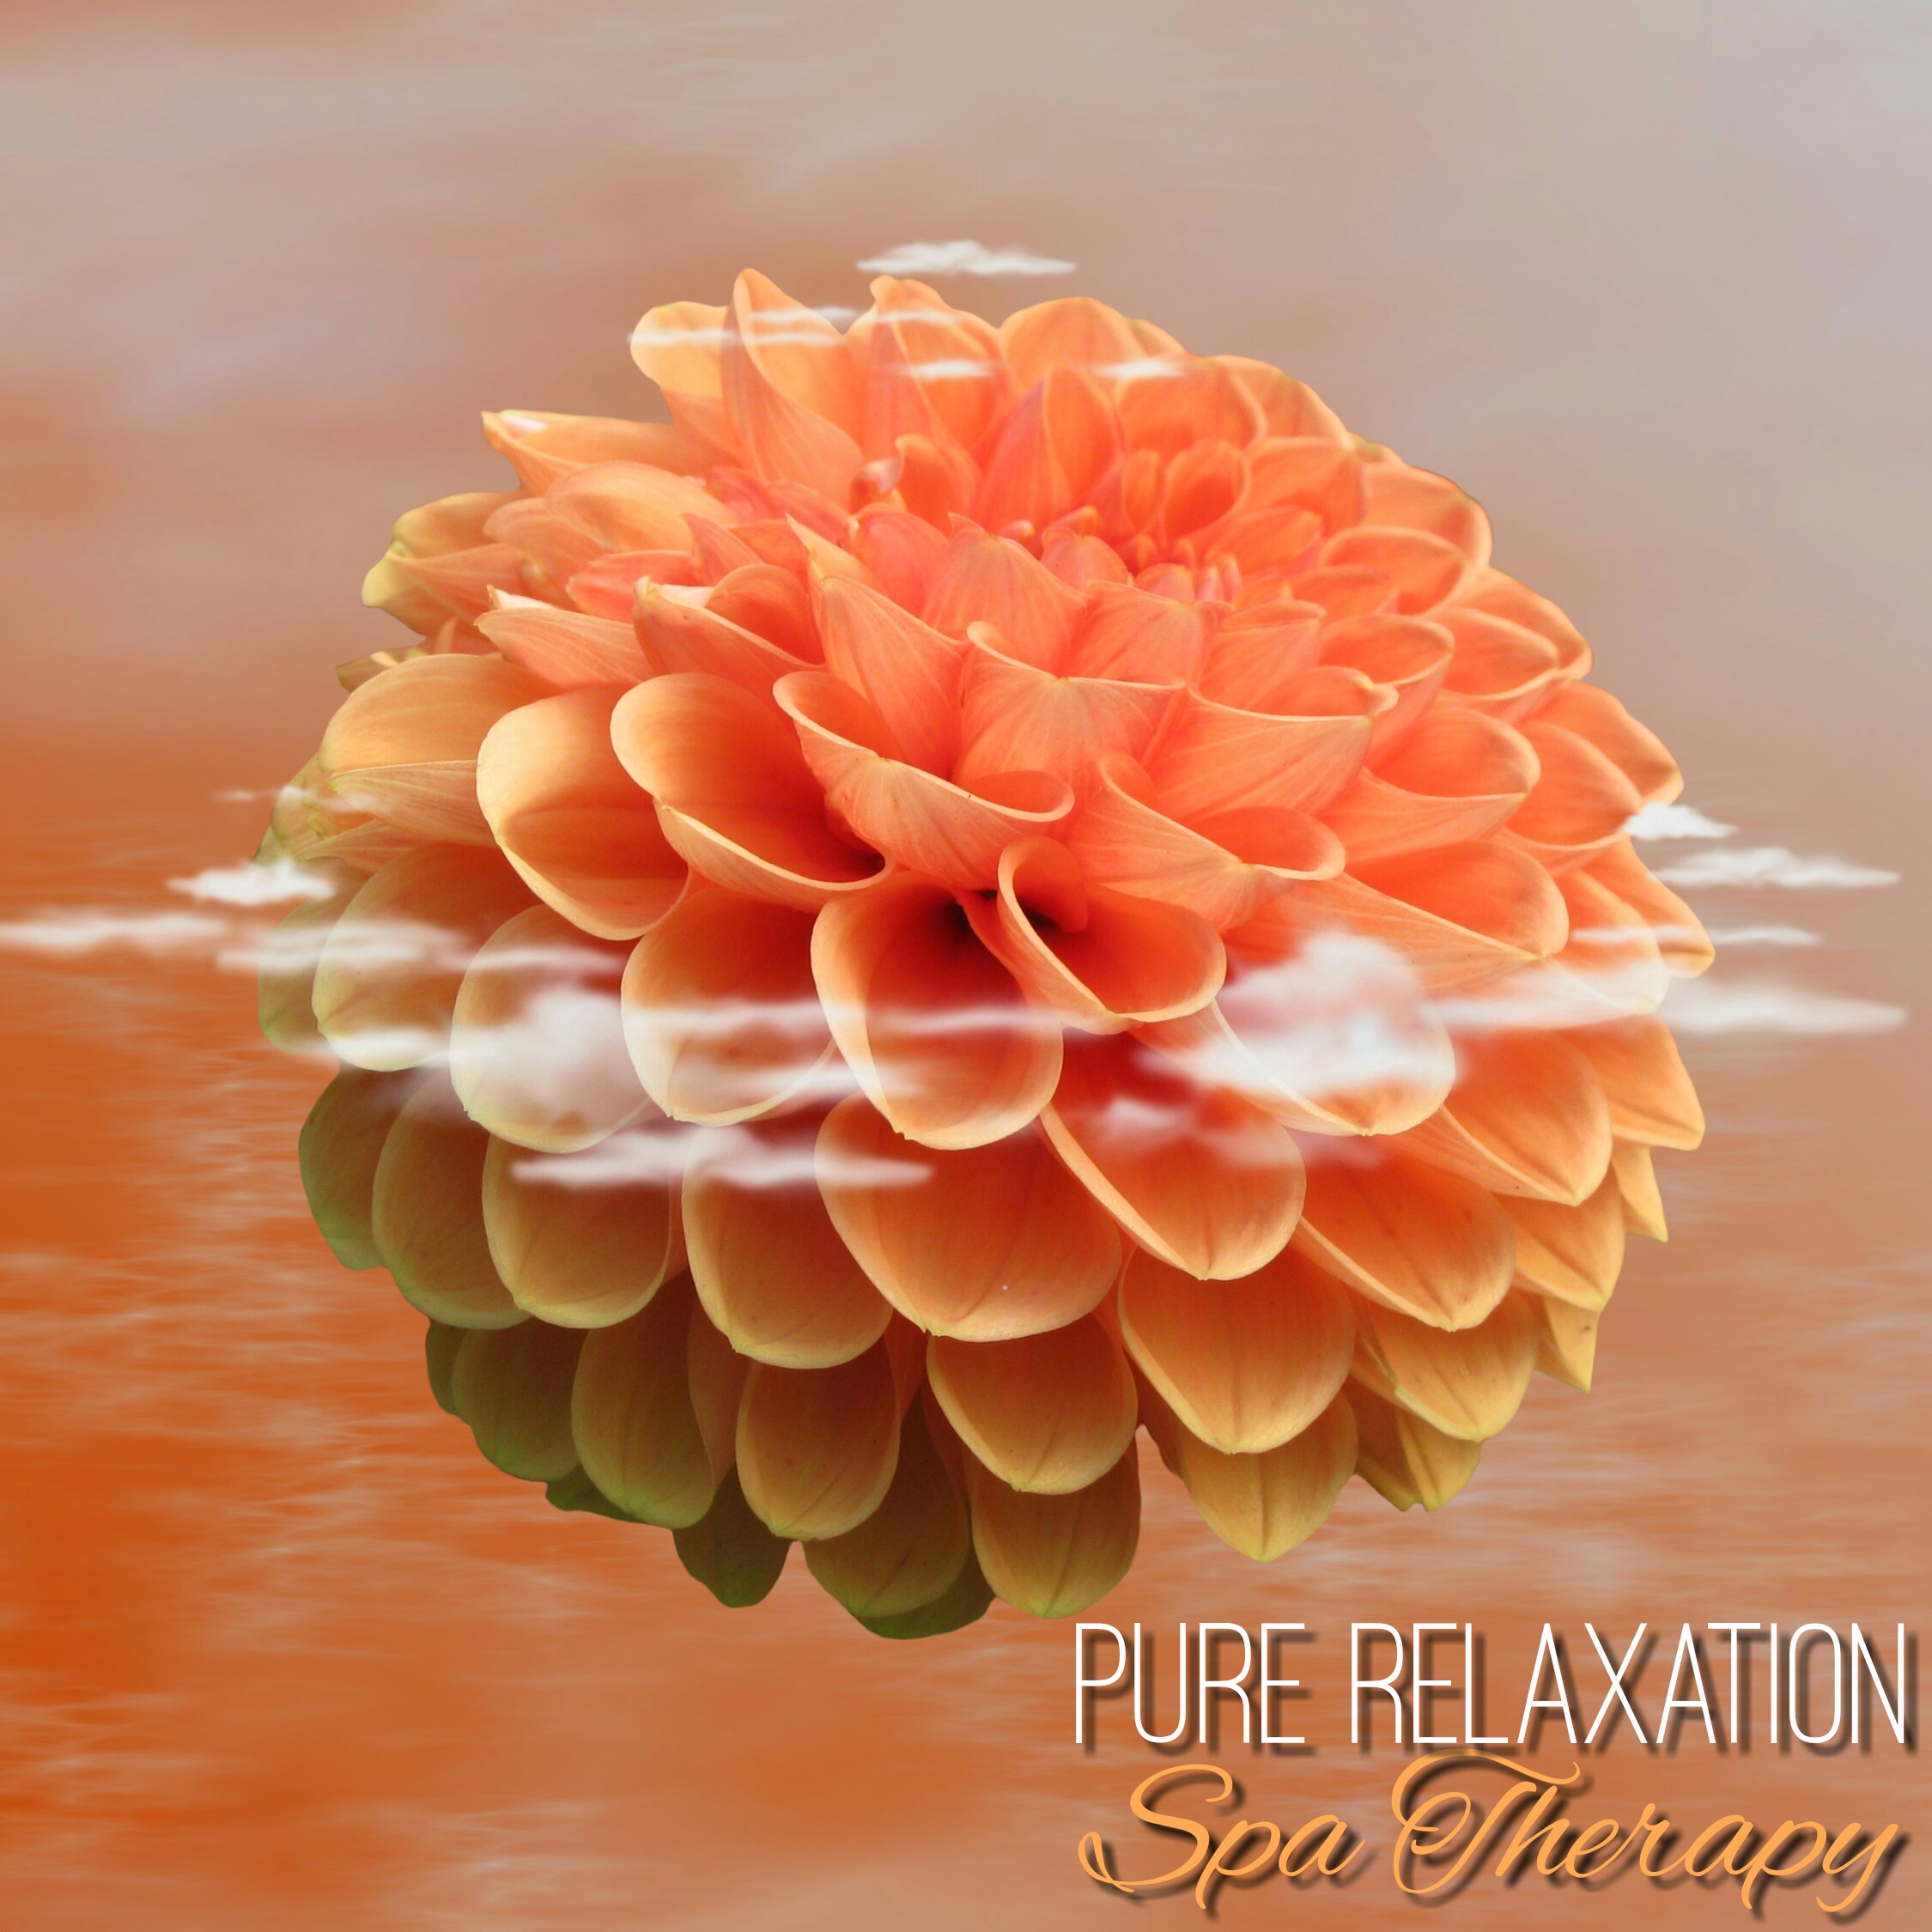 Pure Relaxation Spa Mp3 Music Download Music2relax Com